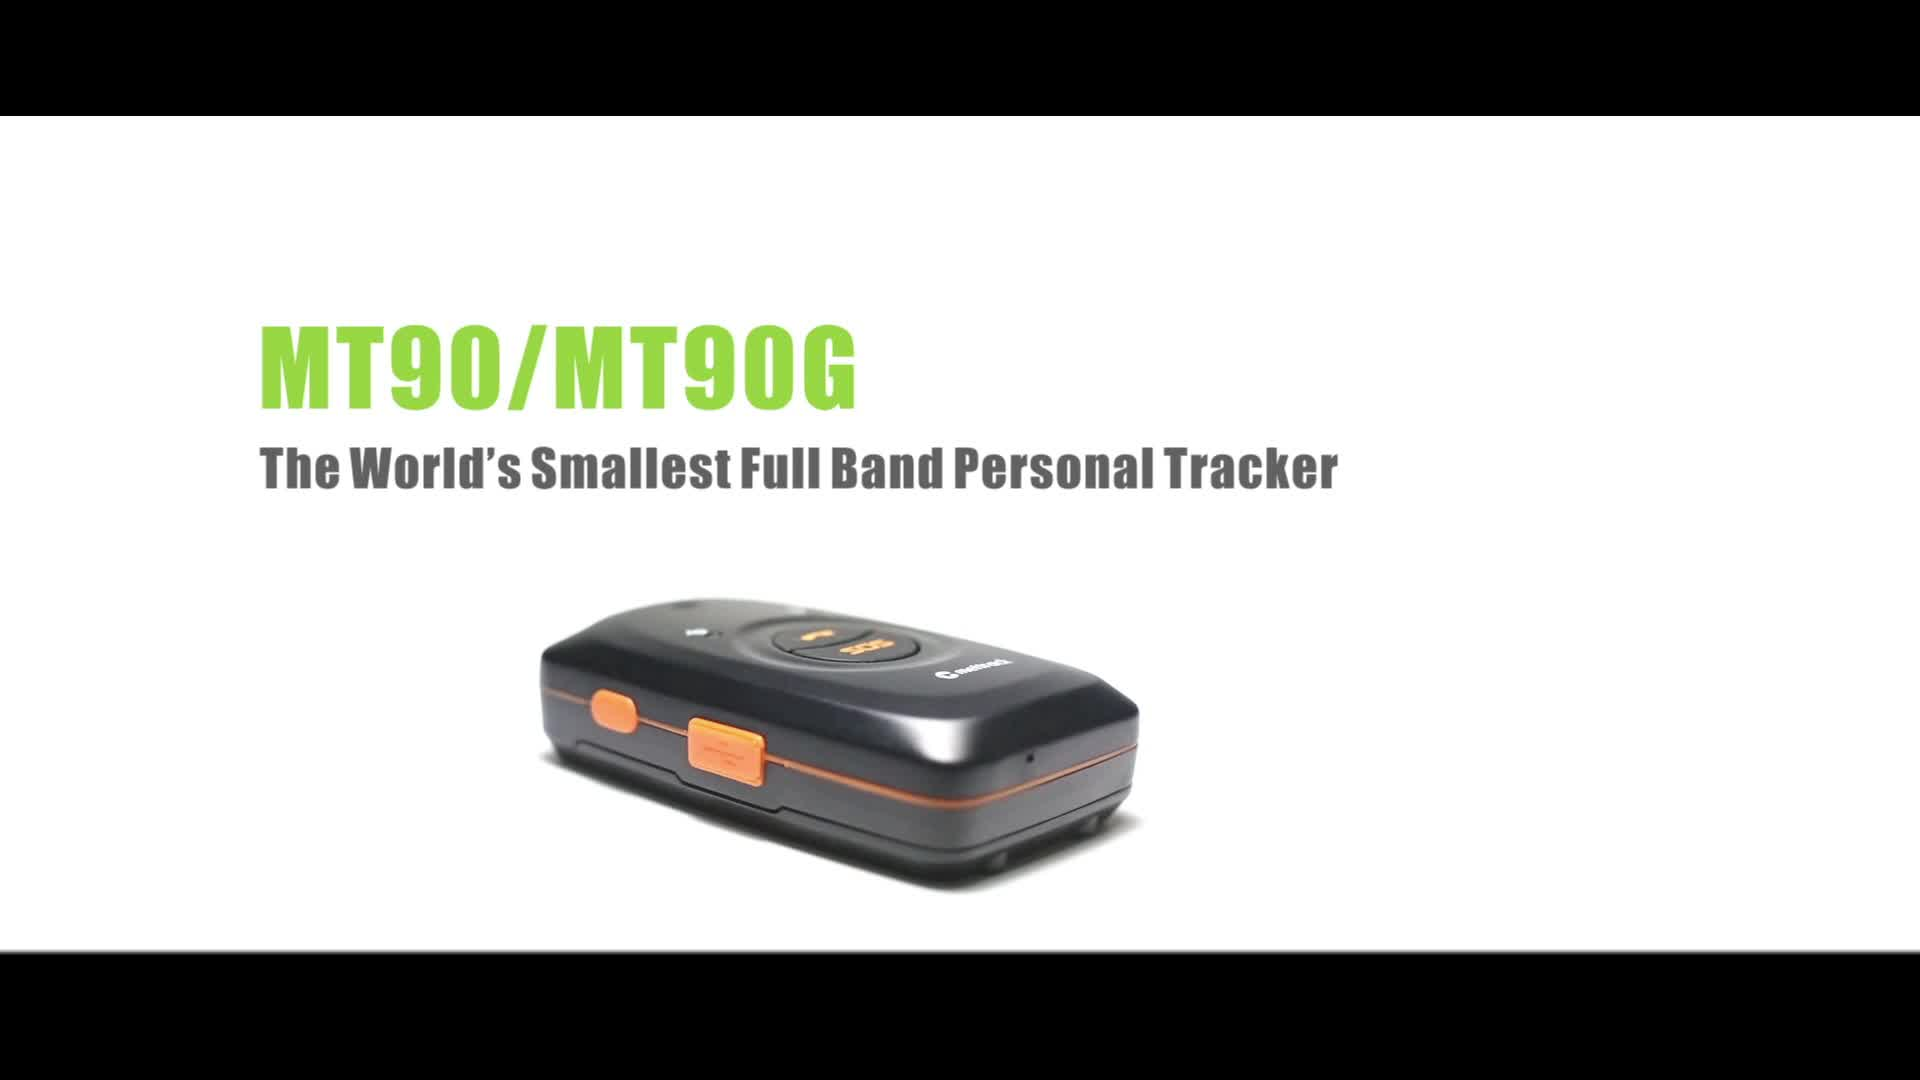 Handheld Portable GPS Tracker with Free Software